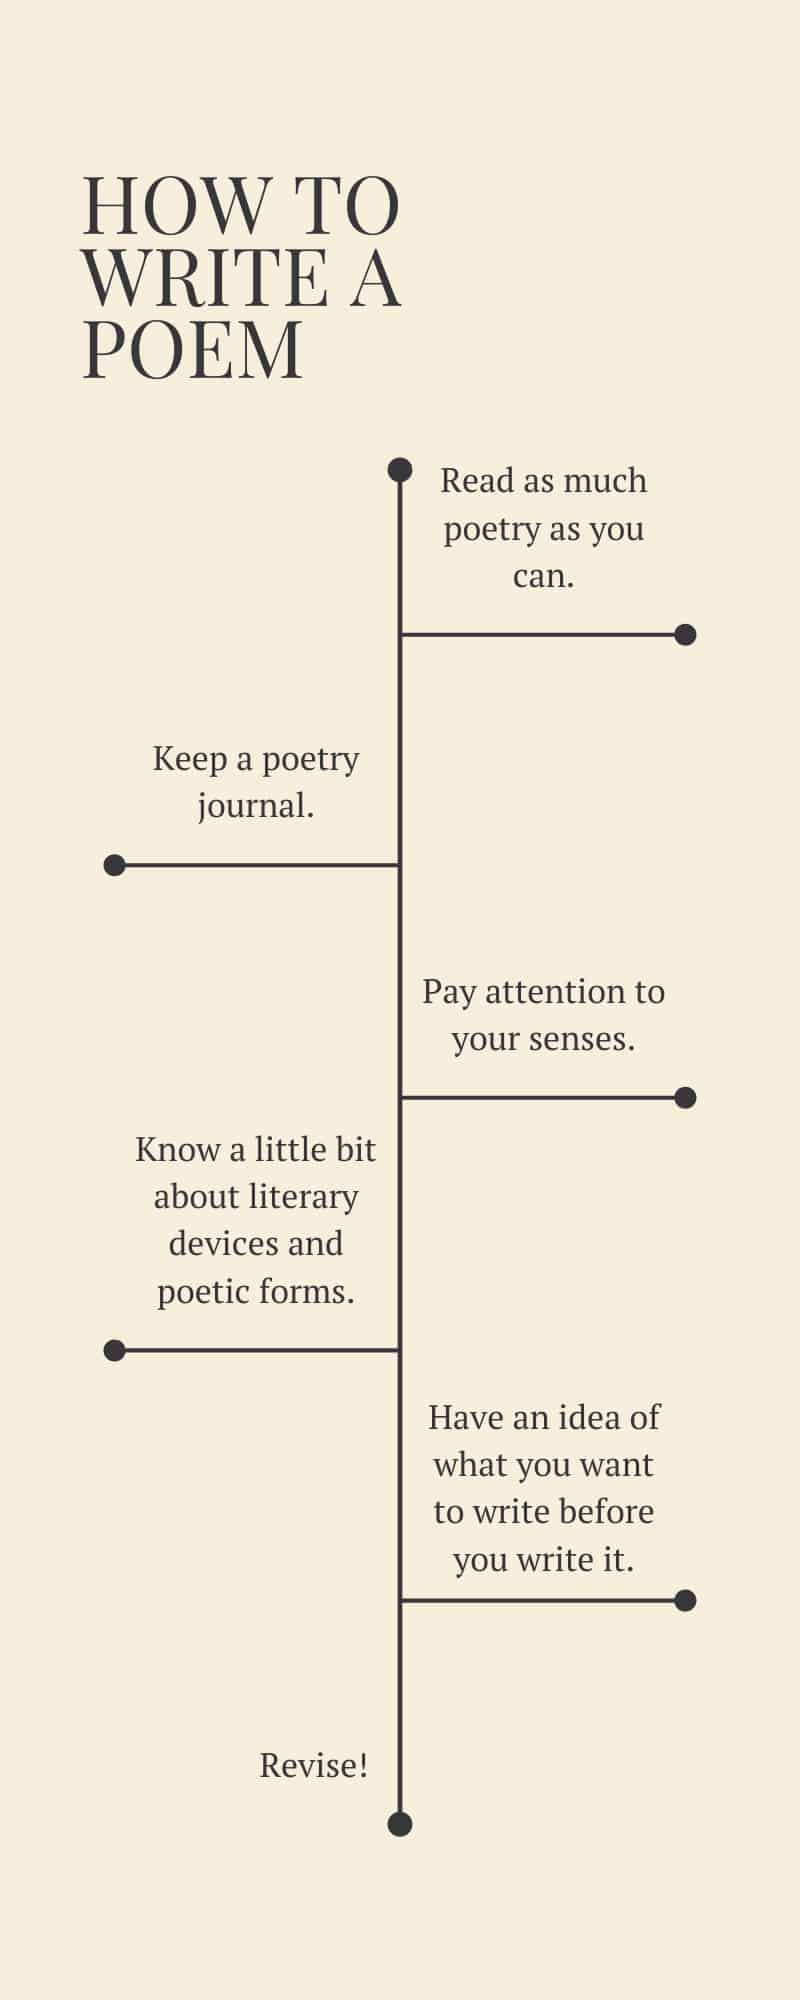 How to write a poem infographic of steps in process